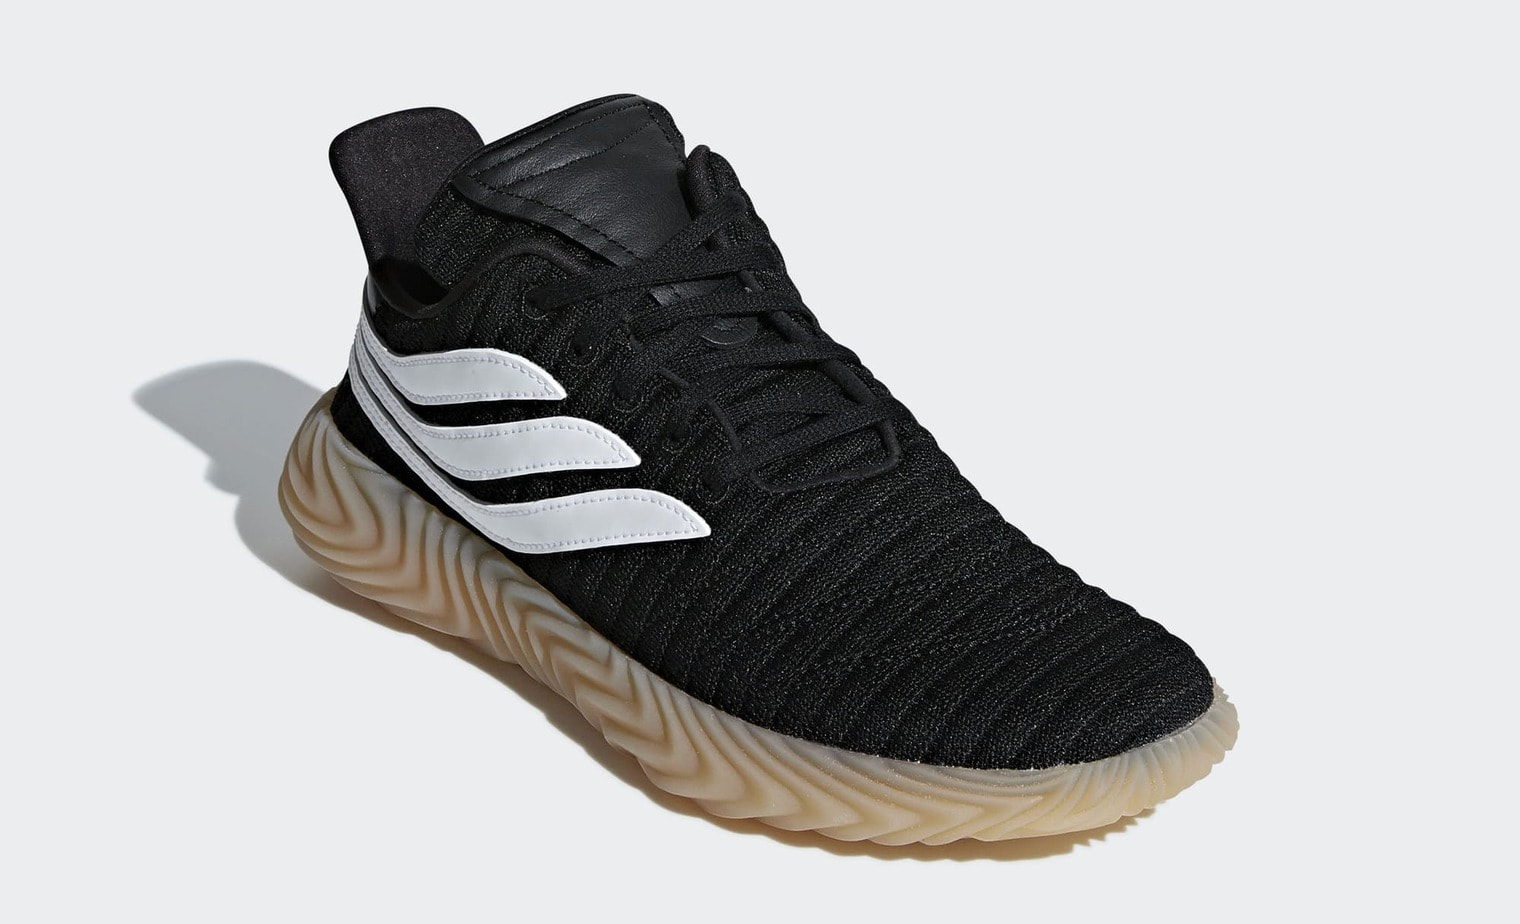 5a4a35efe22289 adidas Originals Sobakov First Look - JustFreshKicks